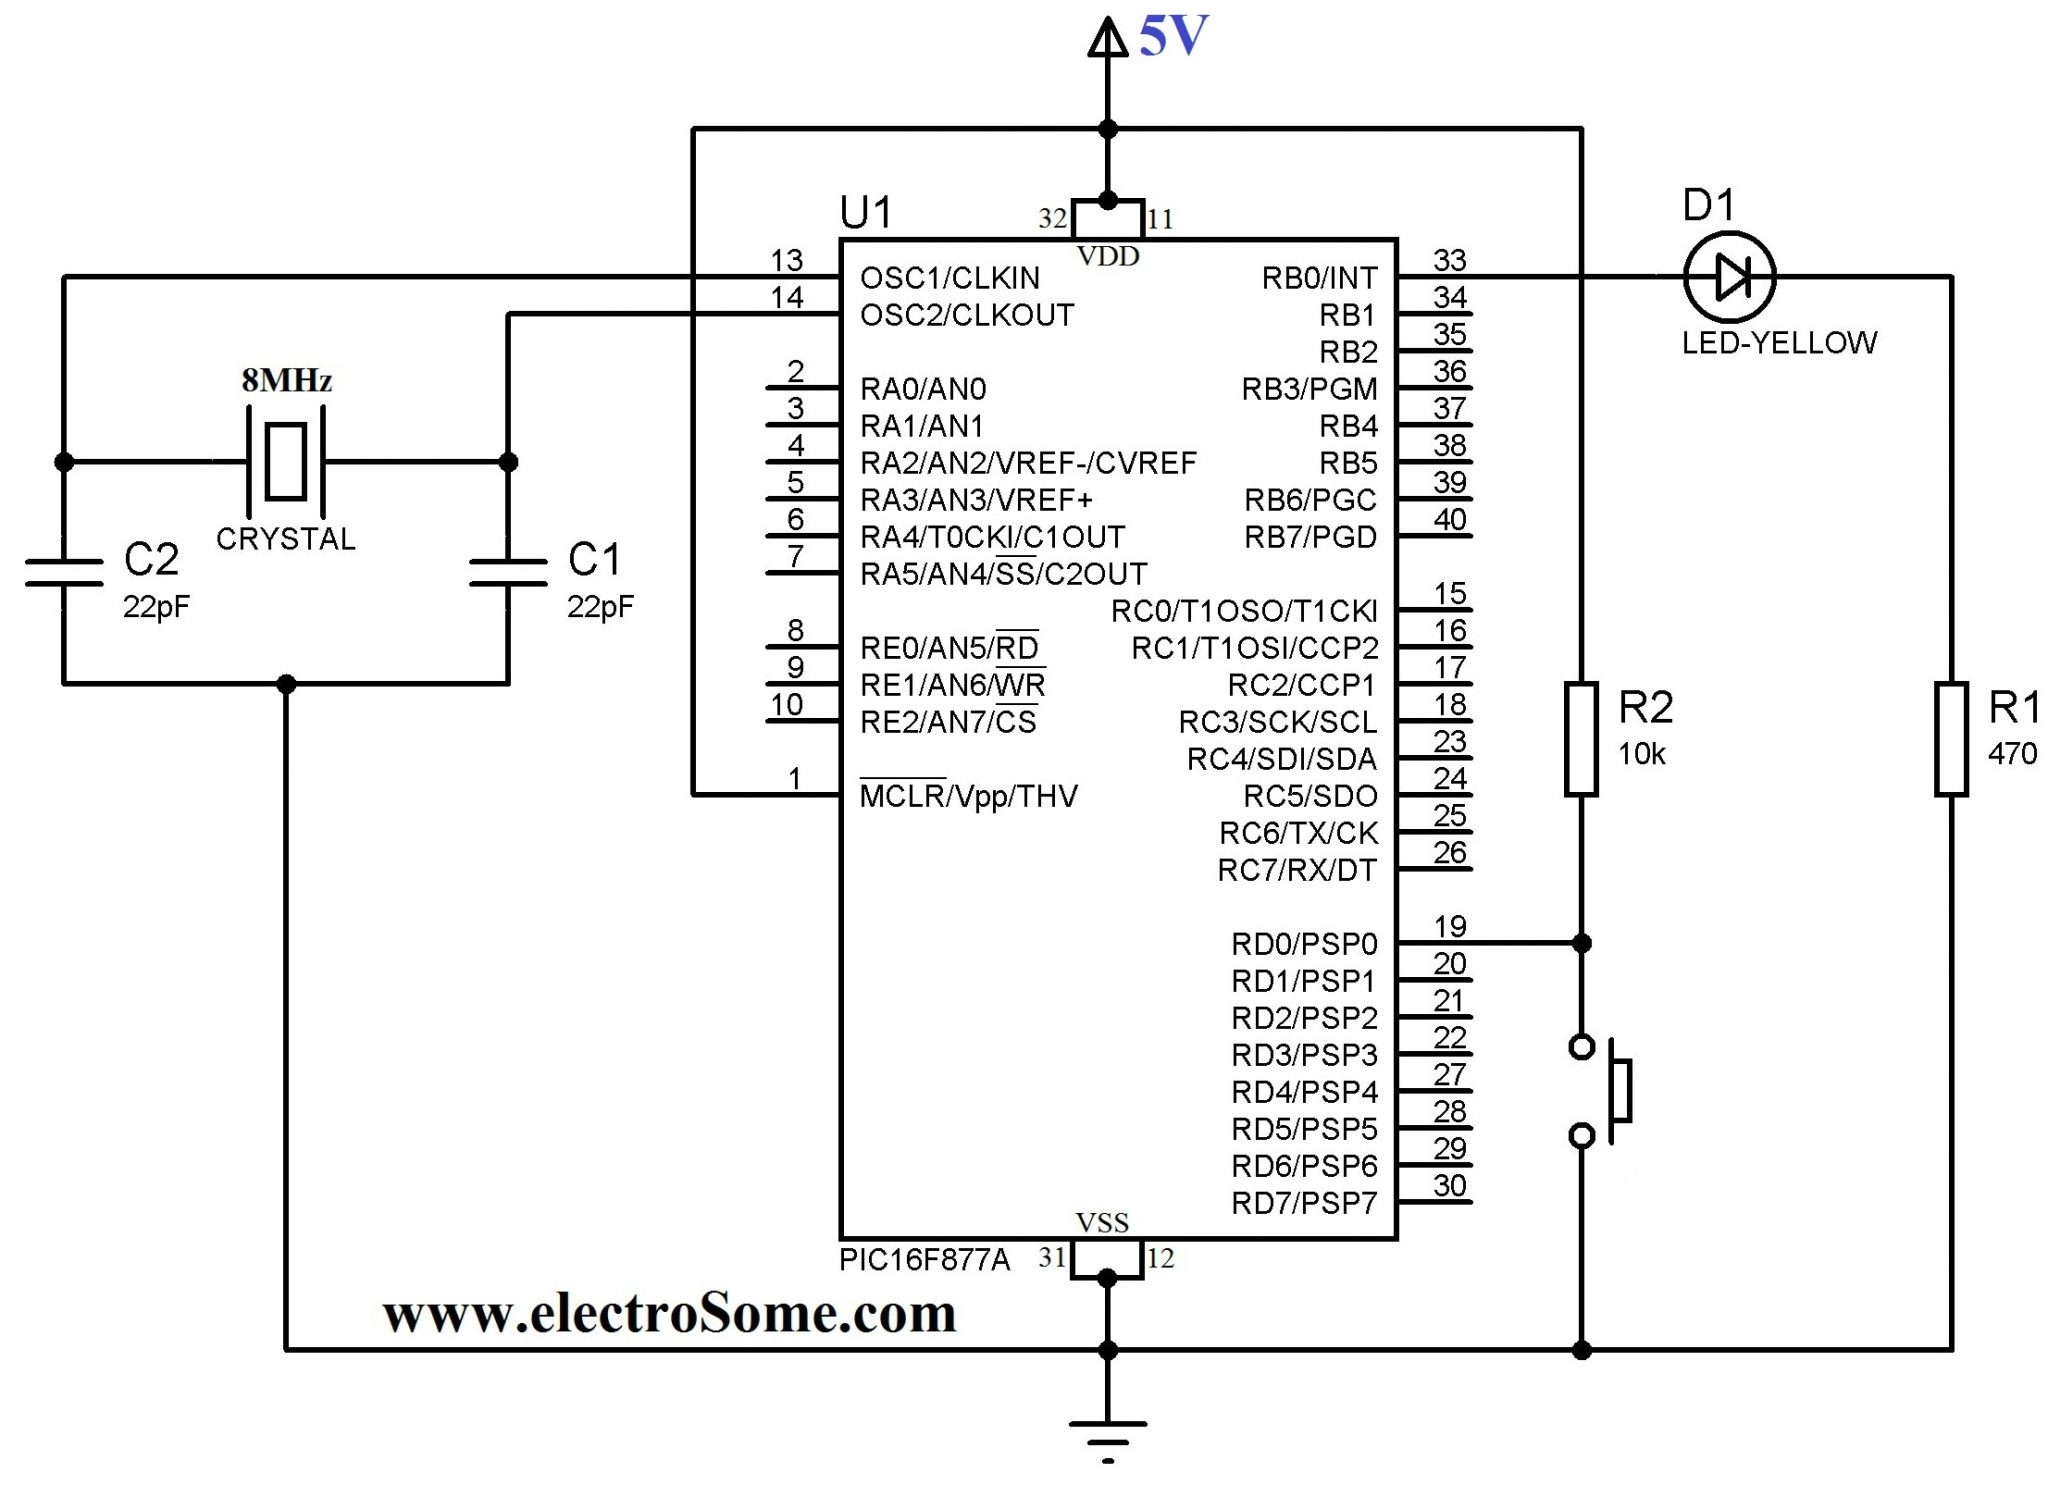 Switch Wiring Diagram As Well Momentary Toggle Switch Wiring Diagram